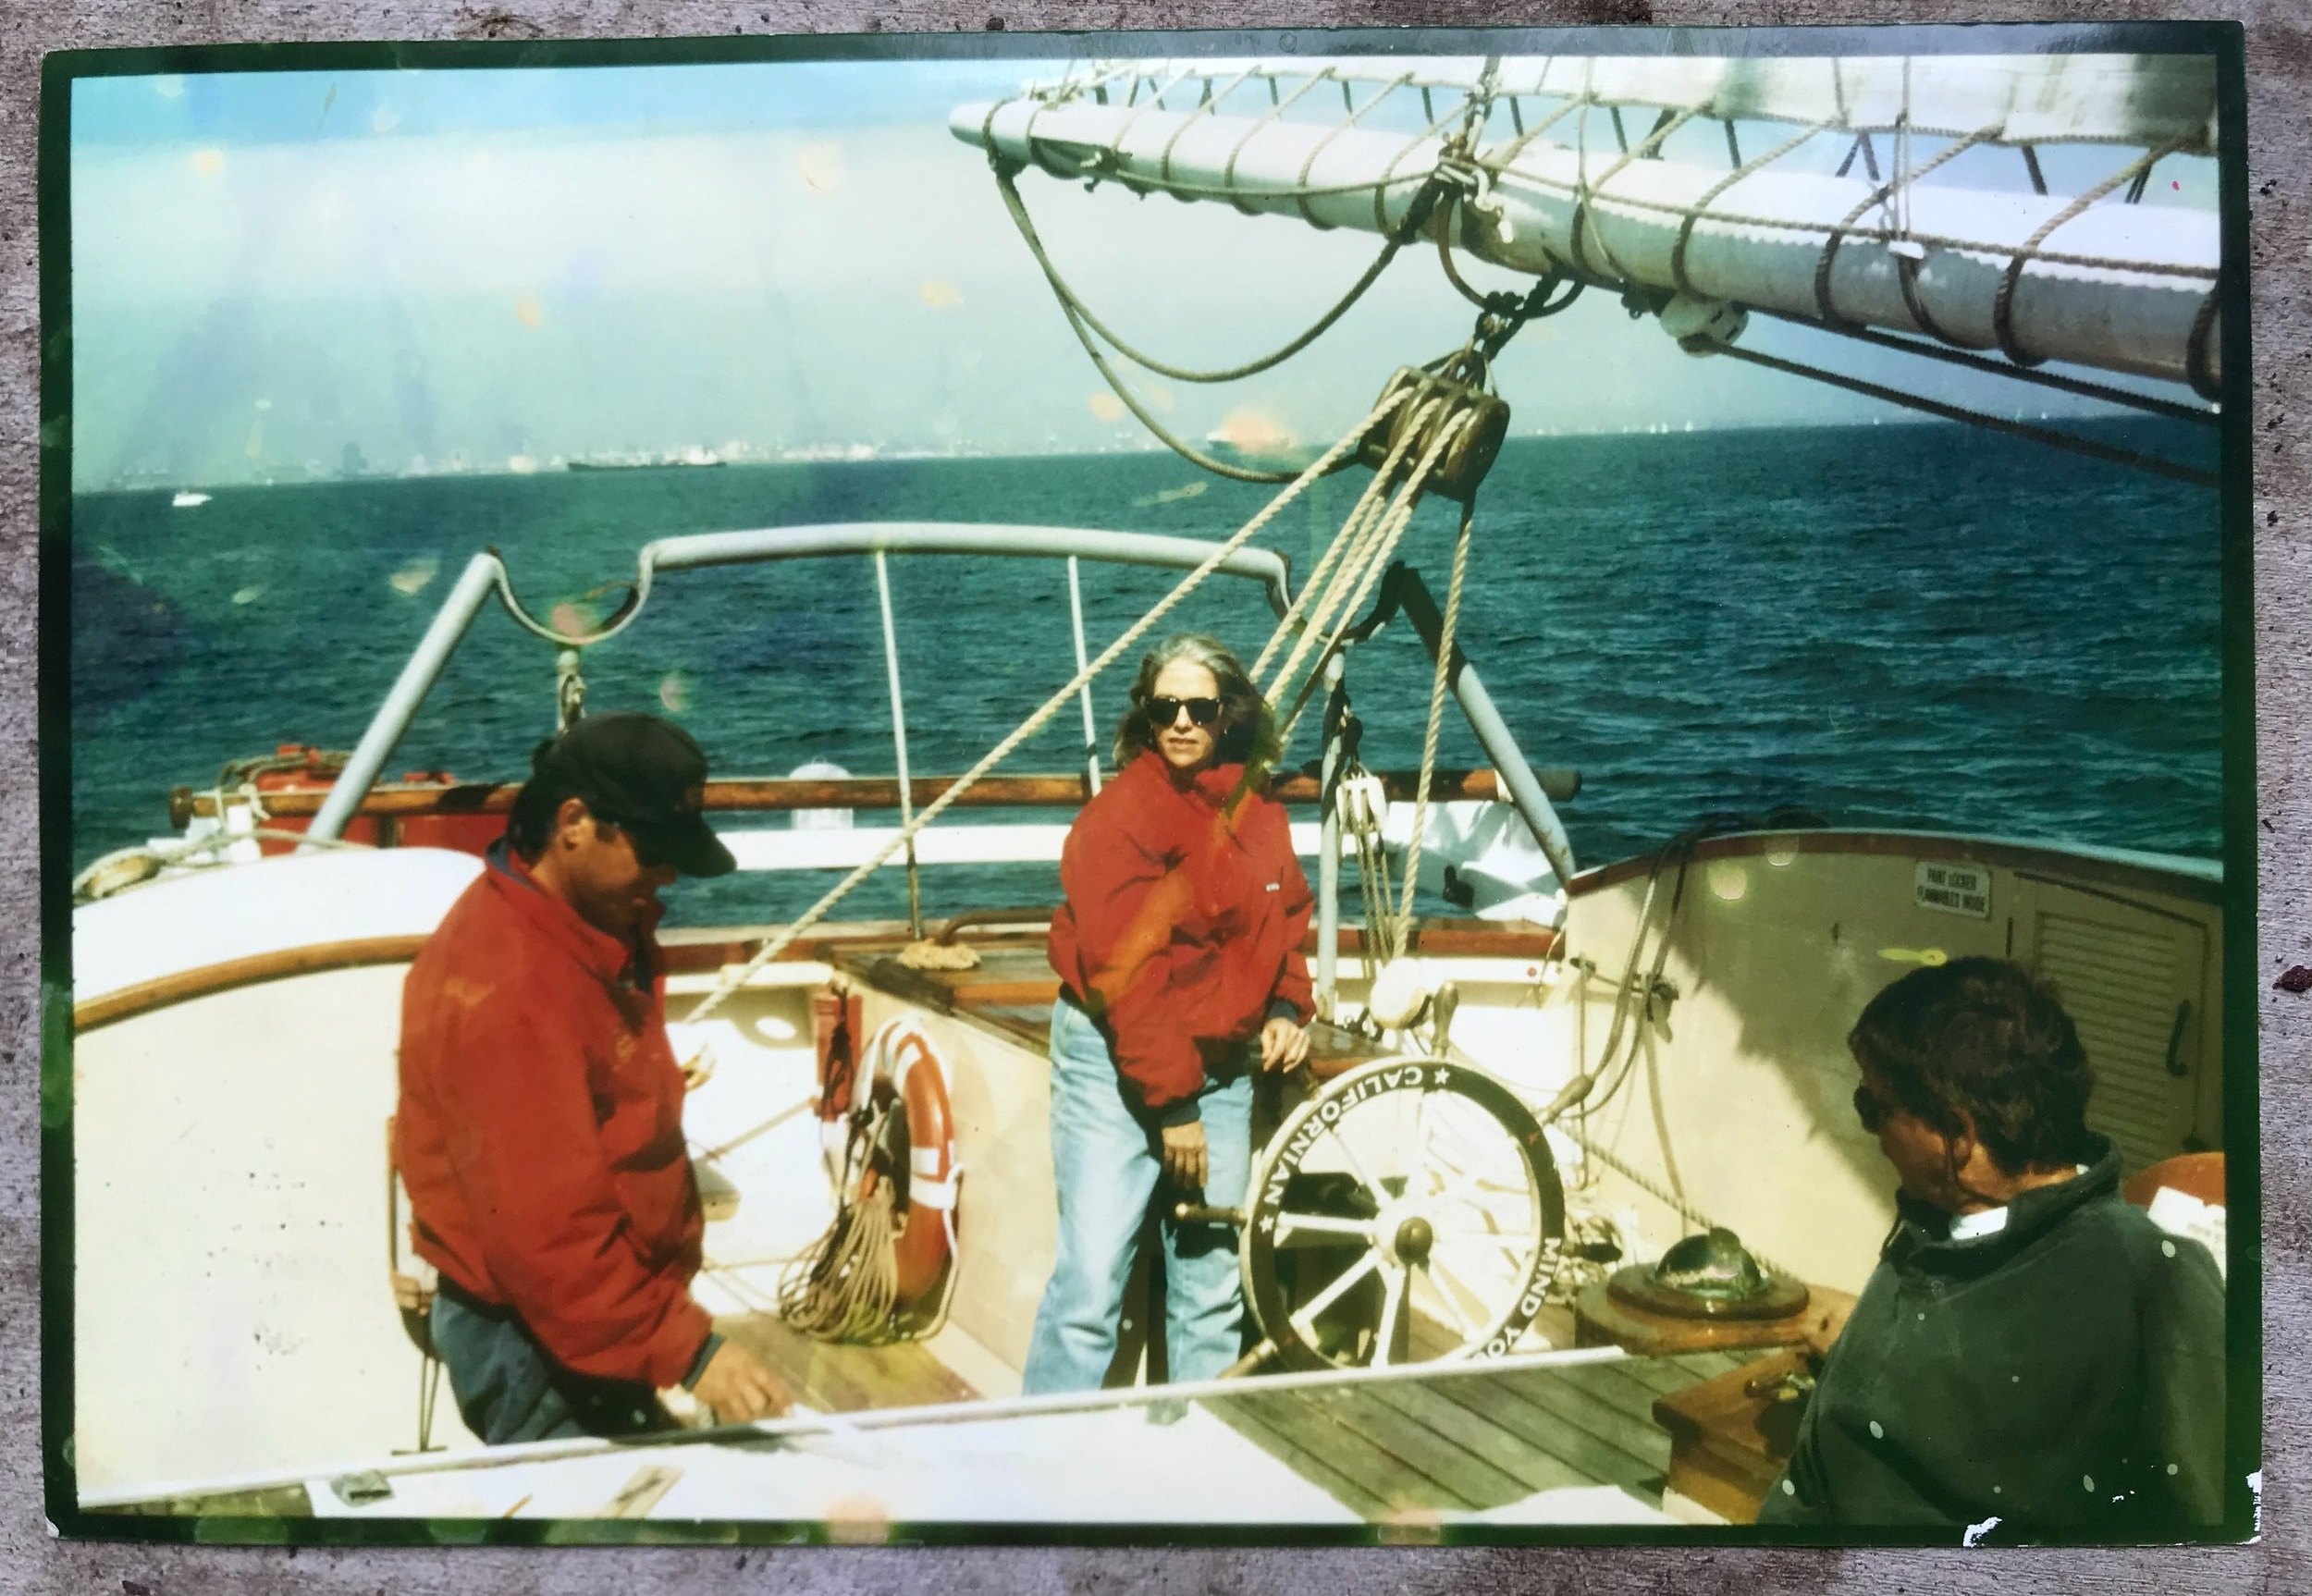 Photo of a photo sailing the Californian when I was The Log editor. One of the perks!